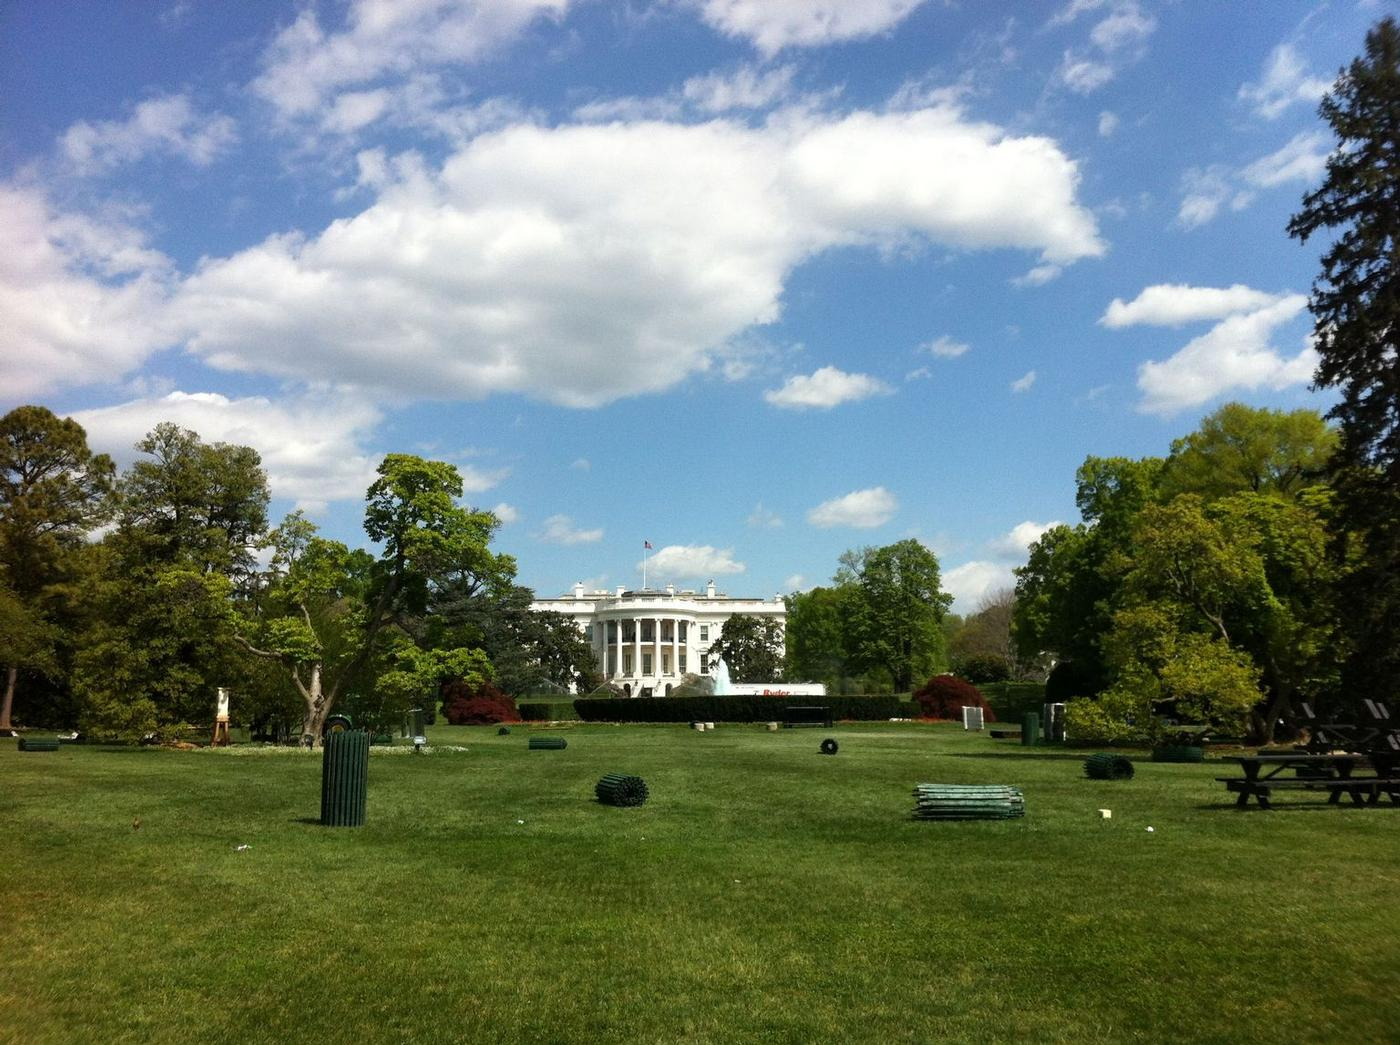 April 10 2012, blue sky and fluffy white clouds over DC